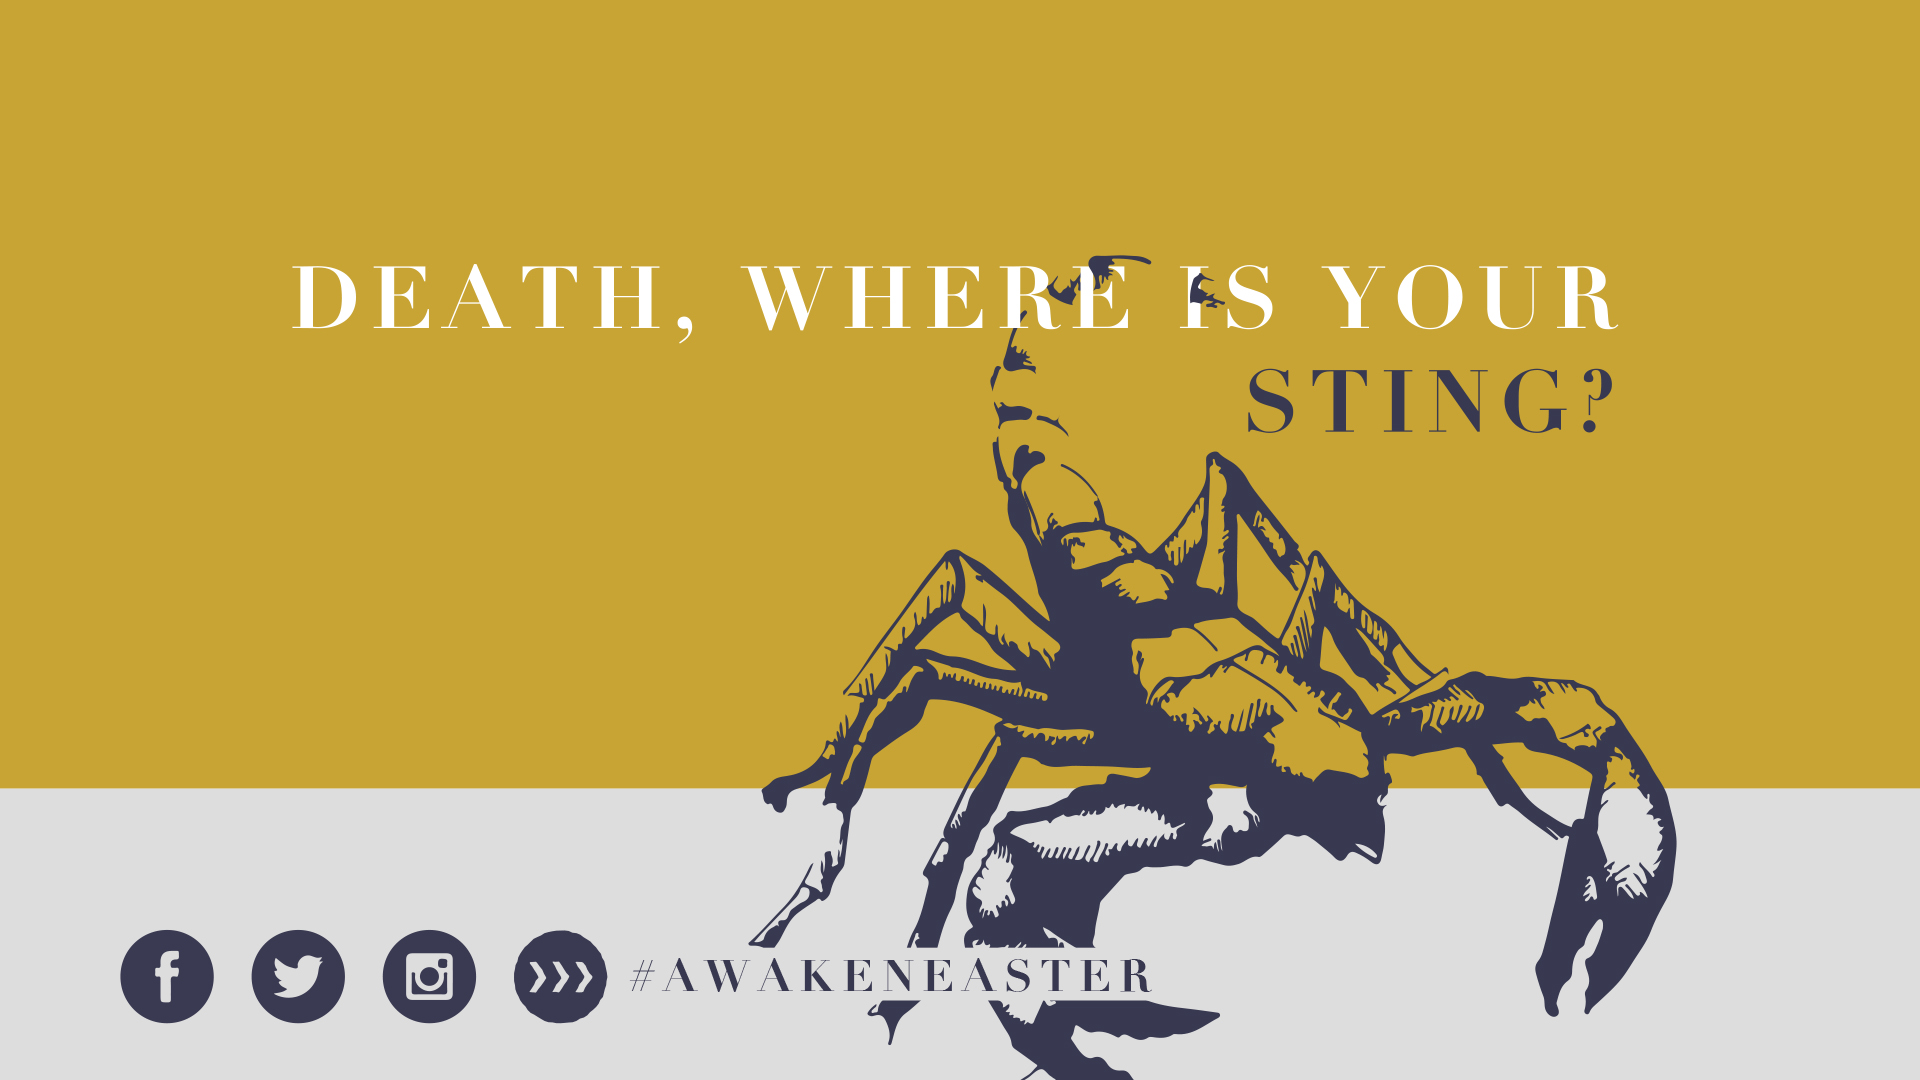 Death, Where Is Your Sting?